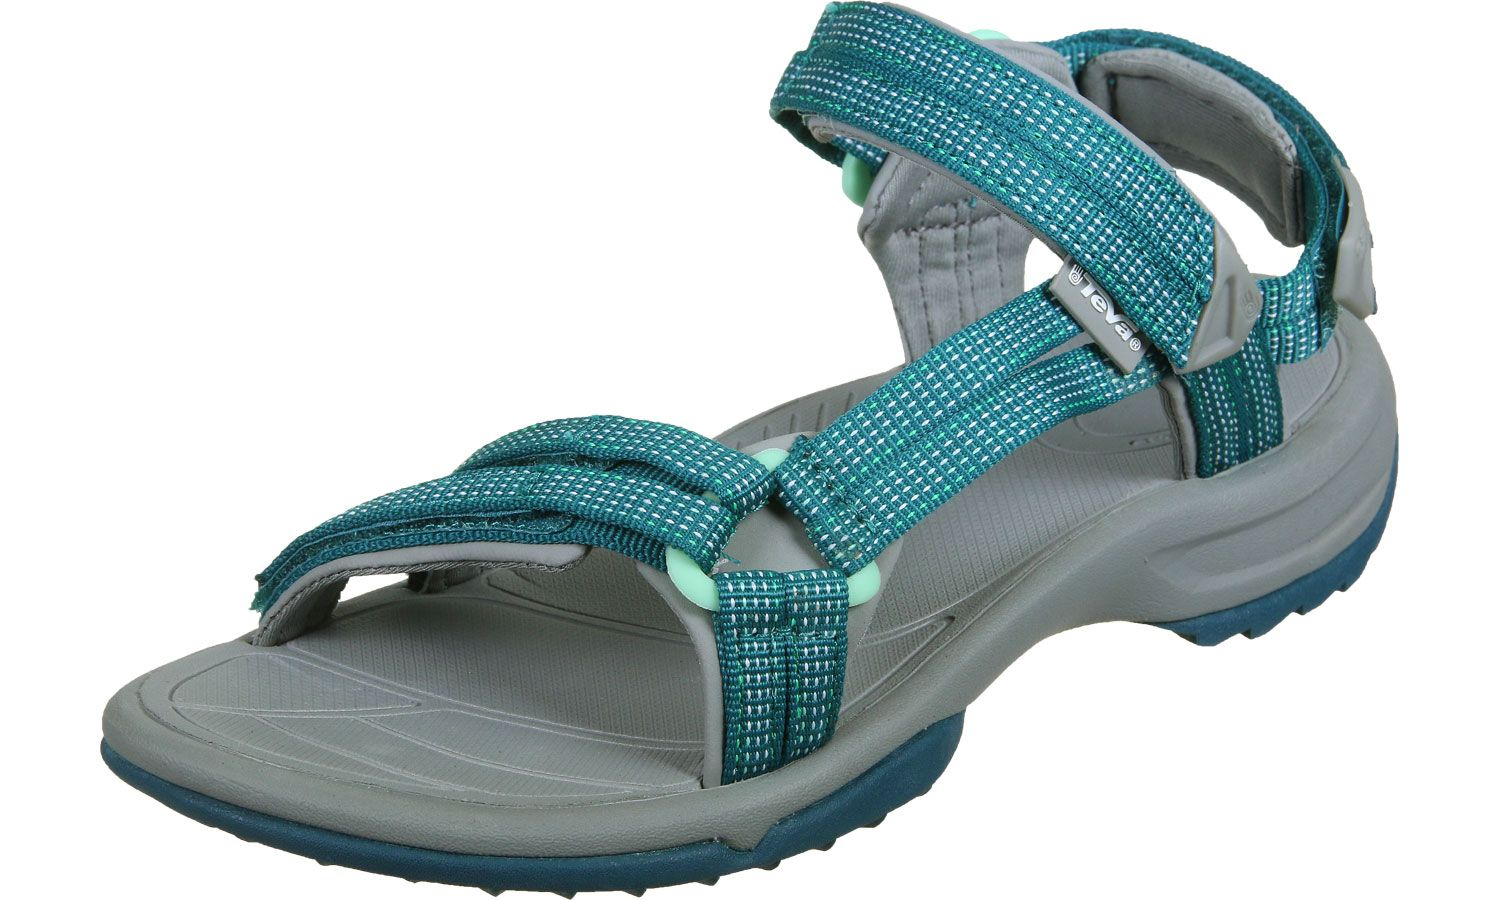 98105657e4c9 Teva Terra Fi Lite Ladies Sports Sandal